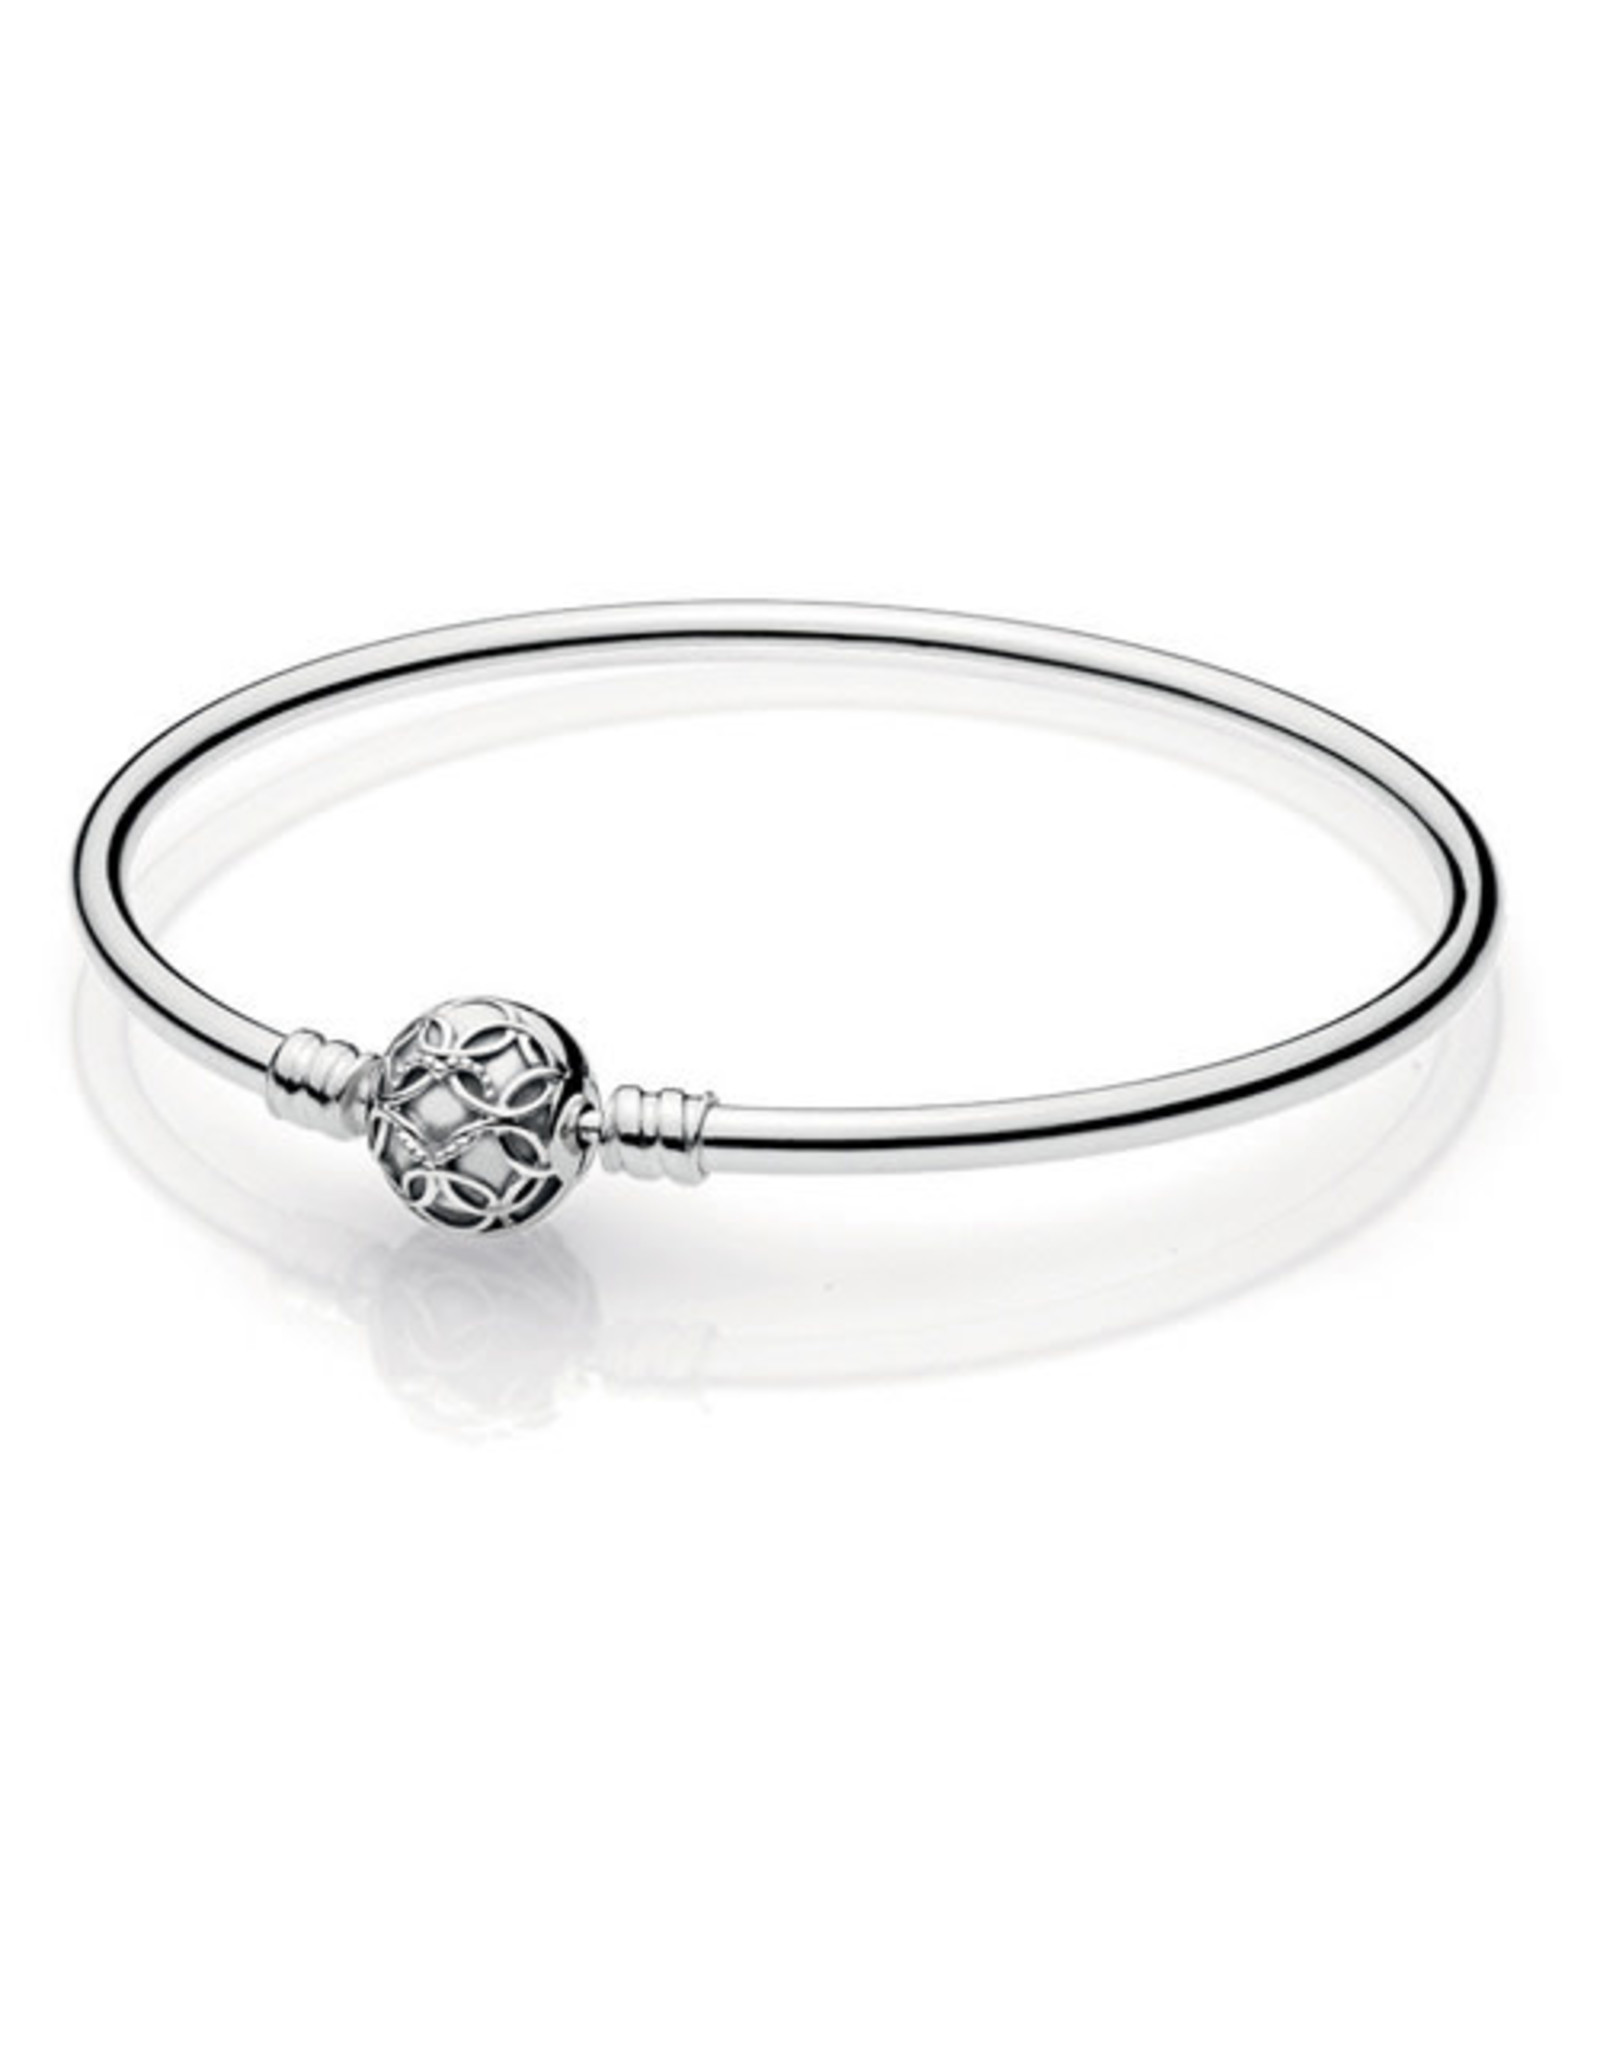 Pandora Pandora Bangle Pattern of Love, (597137) in sterling silver with heart pattern 17 cm